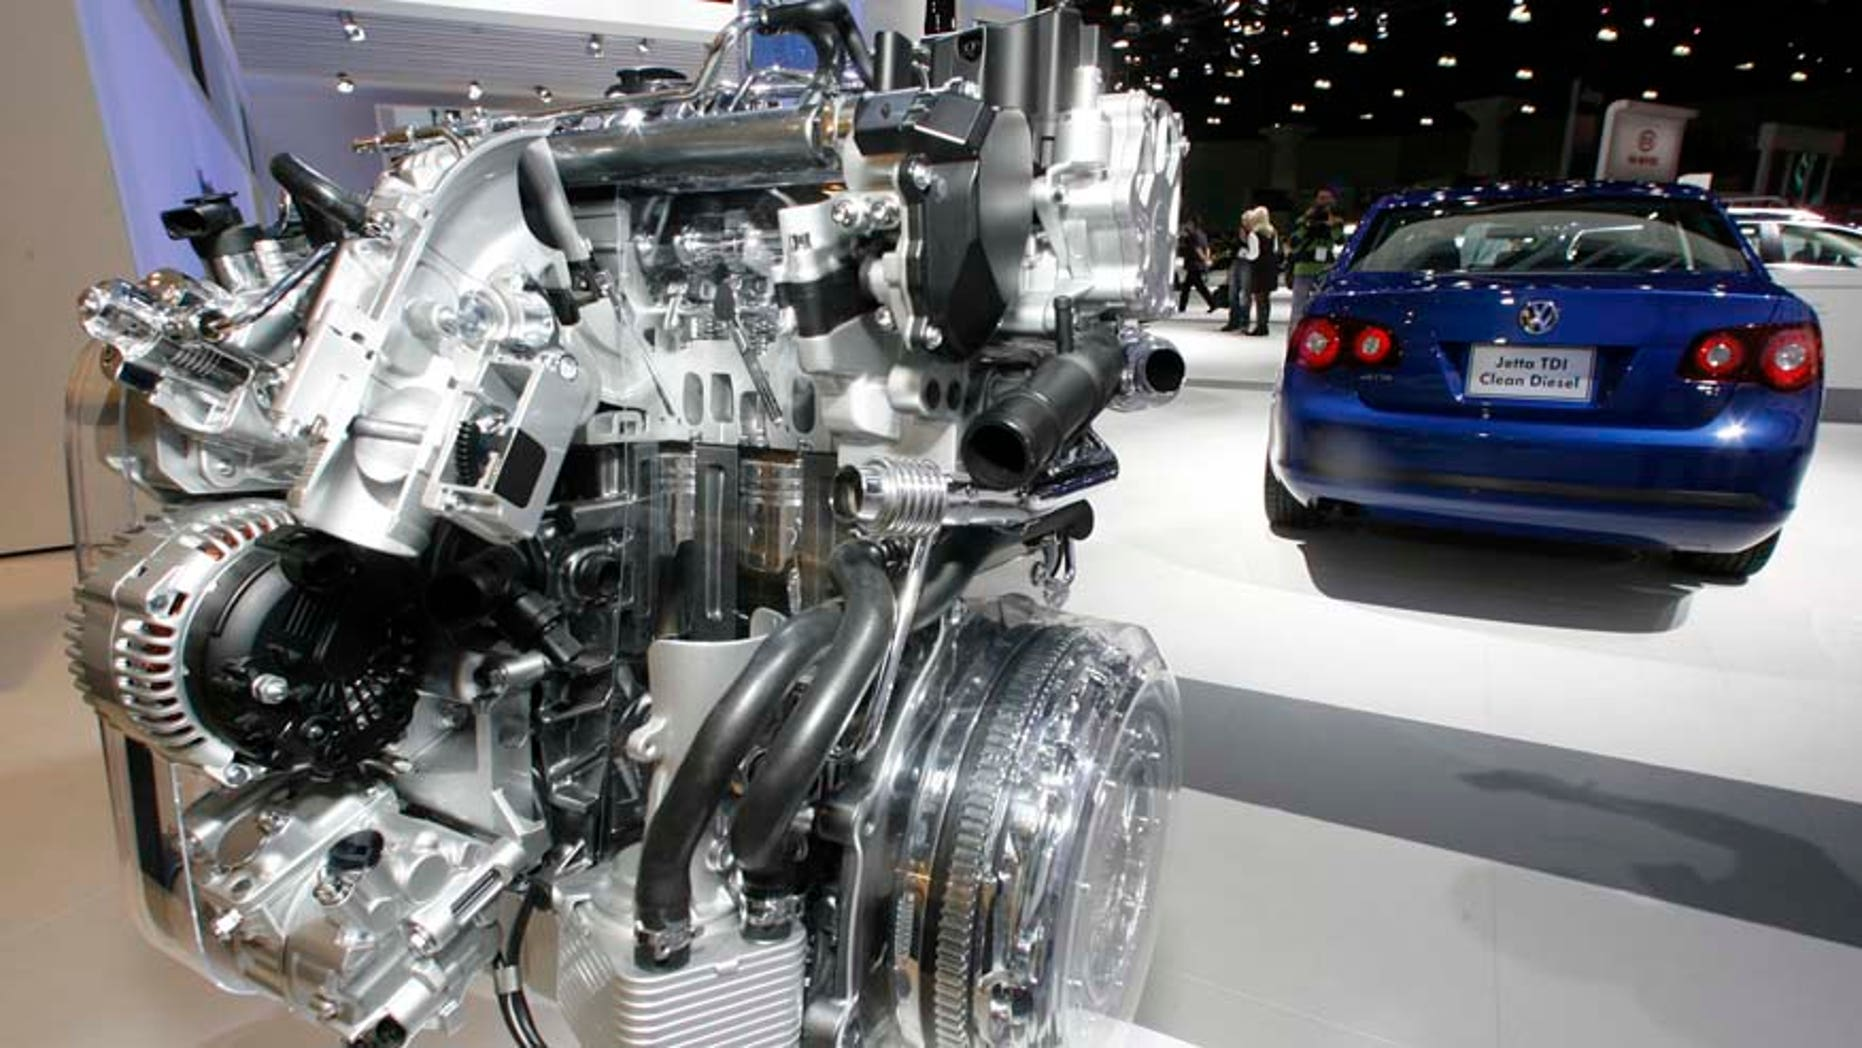 """FILE - In this Nov. 20, 2008 file photo a Volkswagen Jetta TDI diesel engine is displayed at the Los Angeles Auto Show. Green Car Journal named Volkswagen's 2009 Jetta TDI as the """"Green Car of the Year"""" at the show on Thursday, making it the first clean-diesel vehicle to win the prize. Around 15 billion euros (US$ 16.9 billion) was wiped off the market value of Volkswagen AG on Monday, Sept. 21, 2015 following revelations that the German carmaker rigged U.S. emissions tests for about 500,000 diesel cars. (AP Photo/Damian Dovarganes)"""